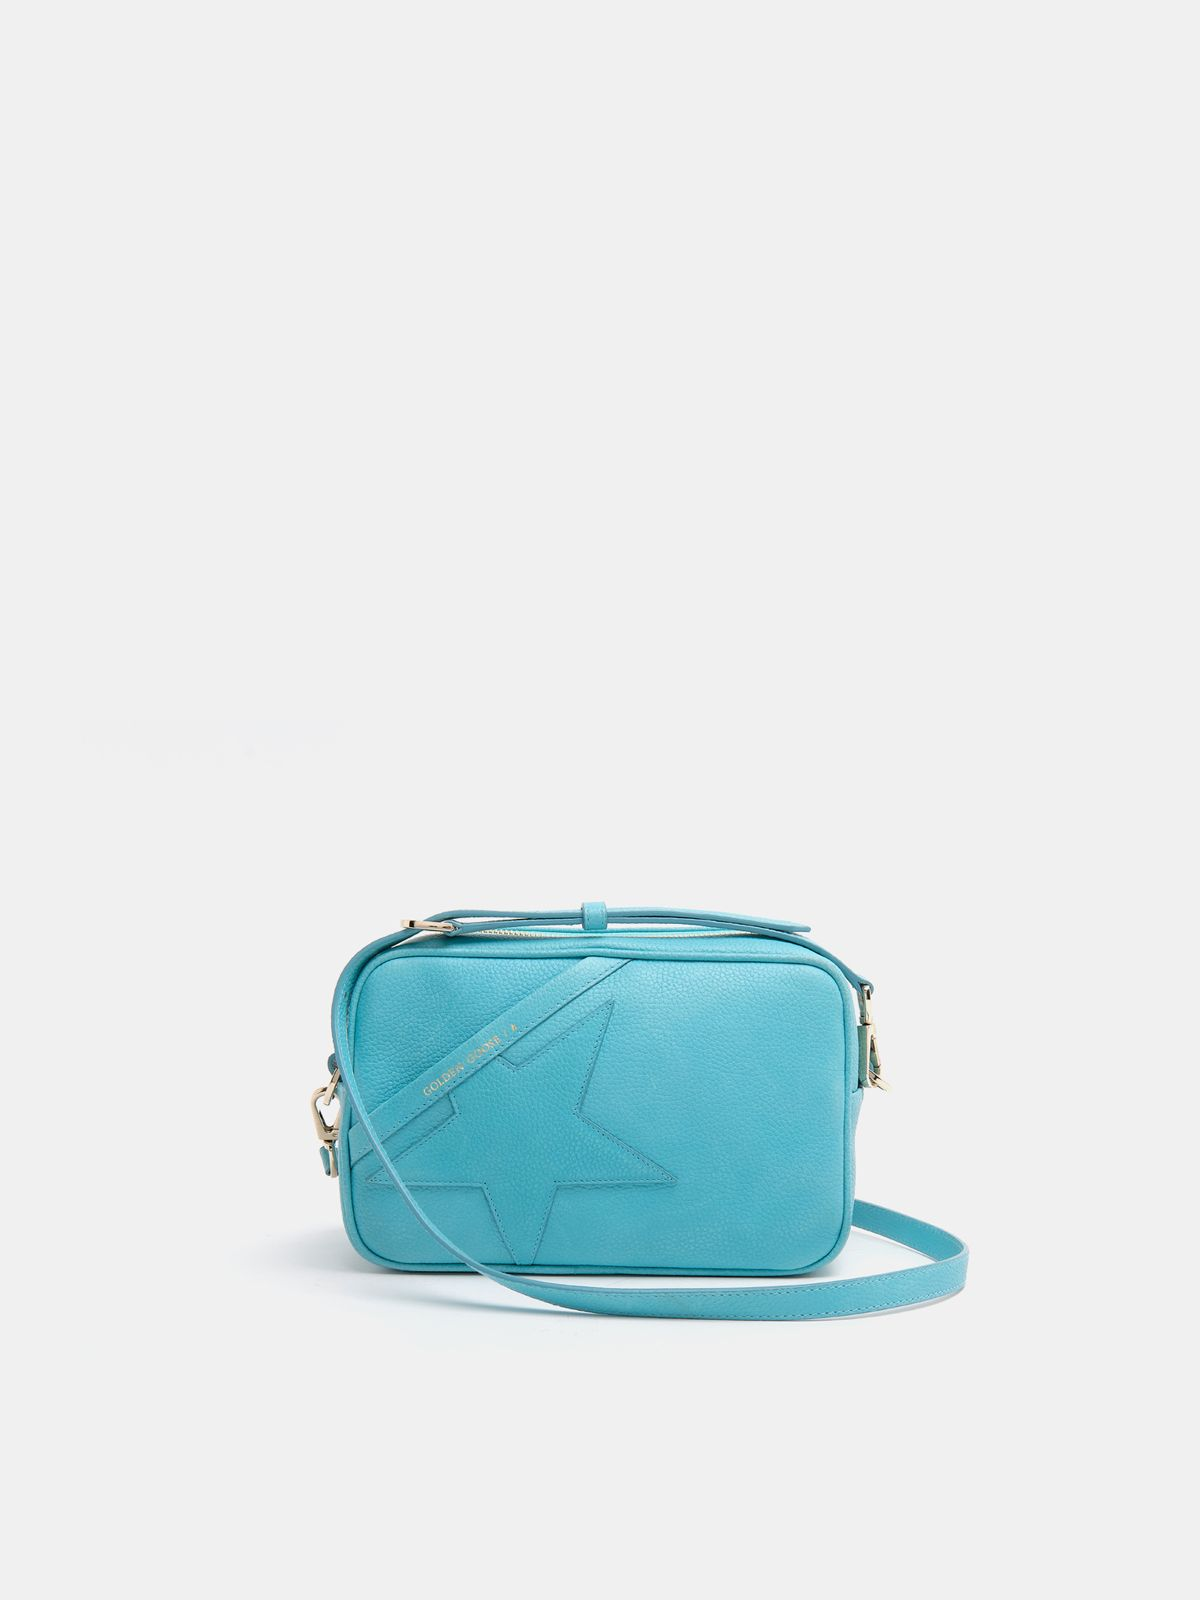 Golden Goose - Turquoise Star Bag made of hammered leather in